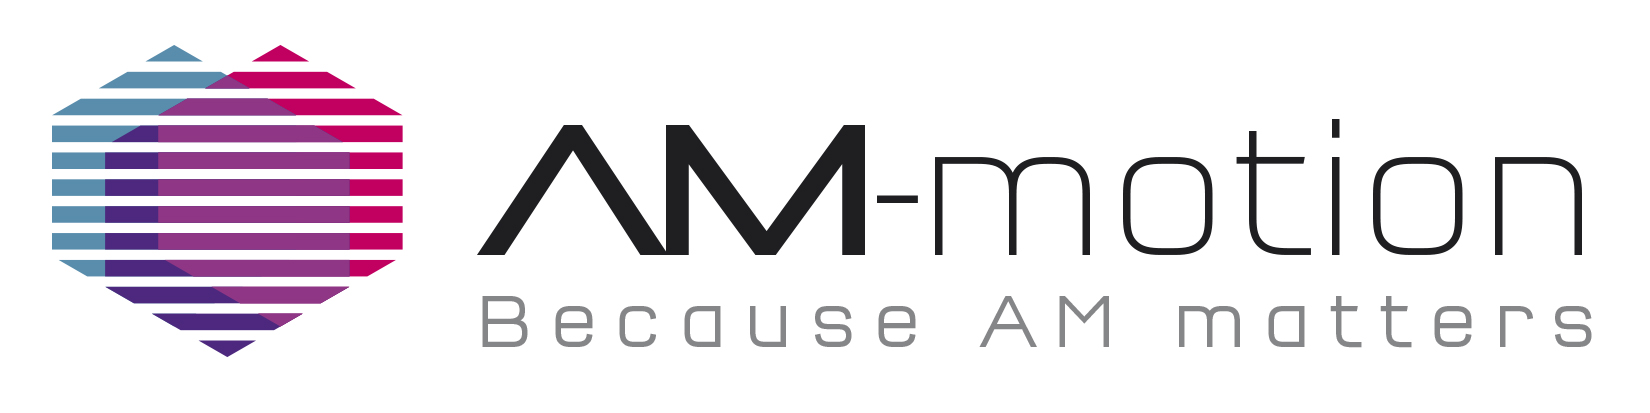 AM motion Logo Color Horizontal